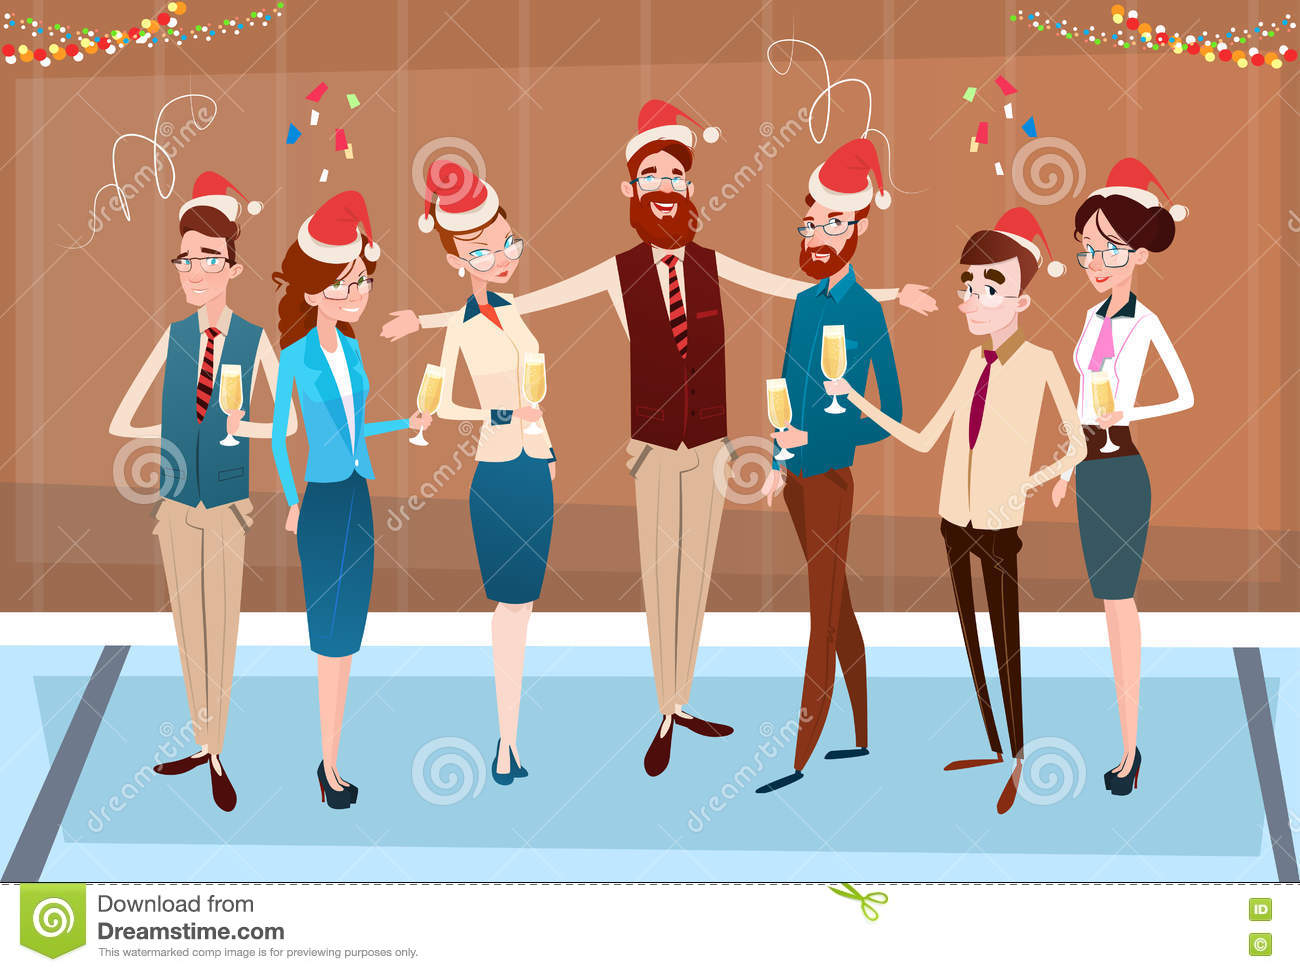 678a857ff6976 Businesspeople Celebrate Merry Christmas And Happy New Year Office Business  People Team Santa Hat